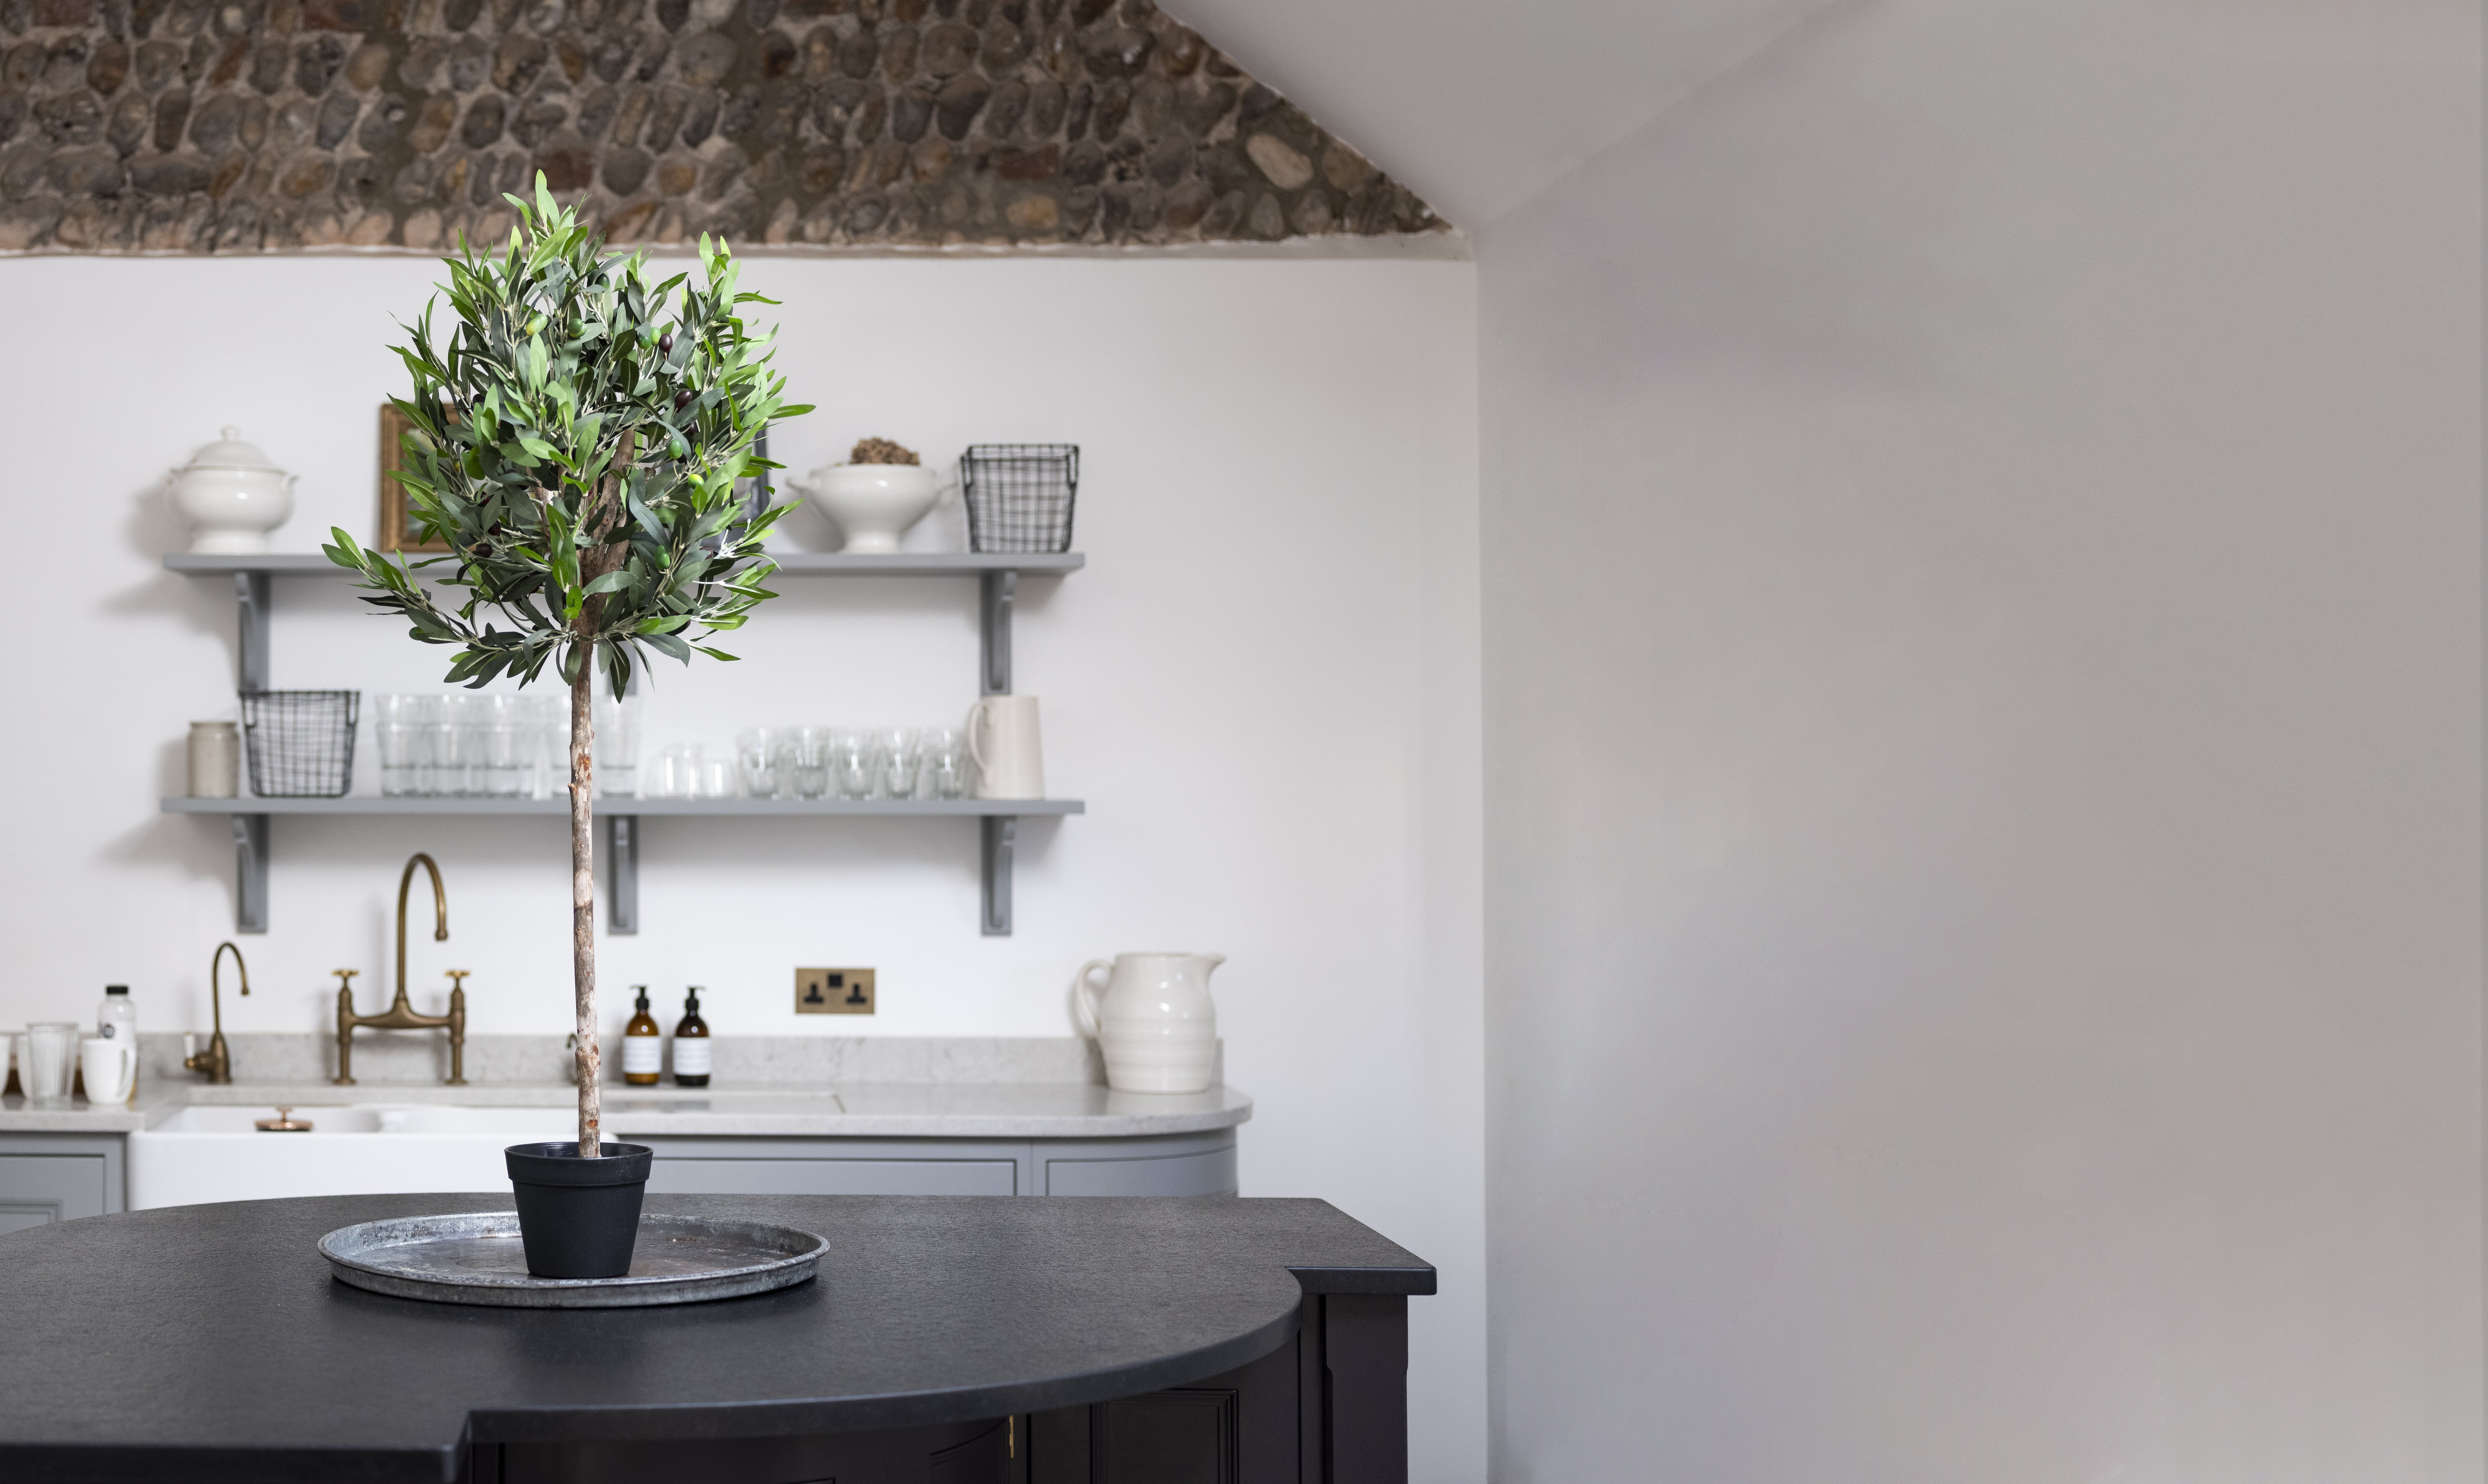 artificial olive ball tree on kitchen counter